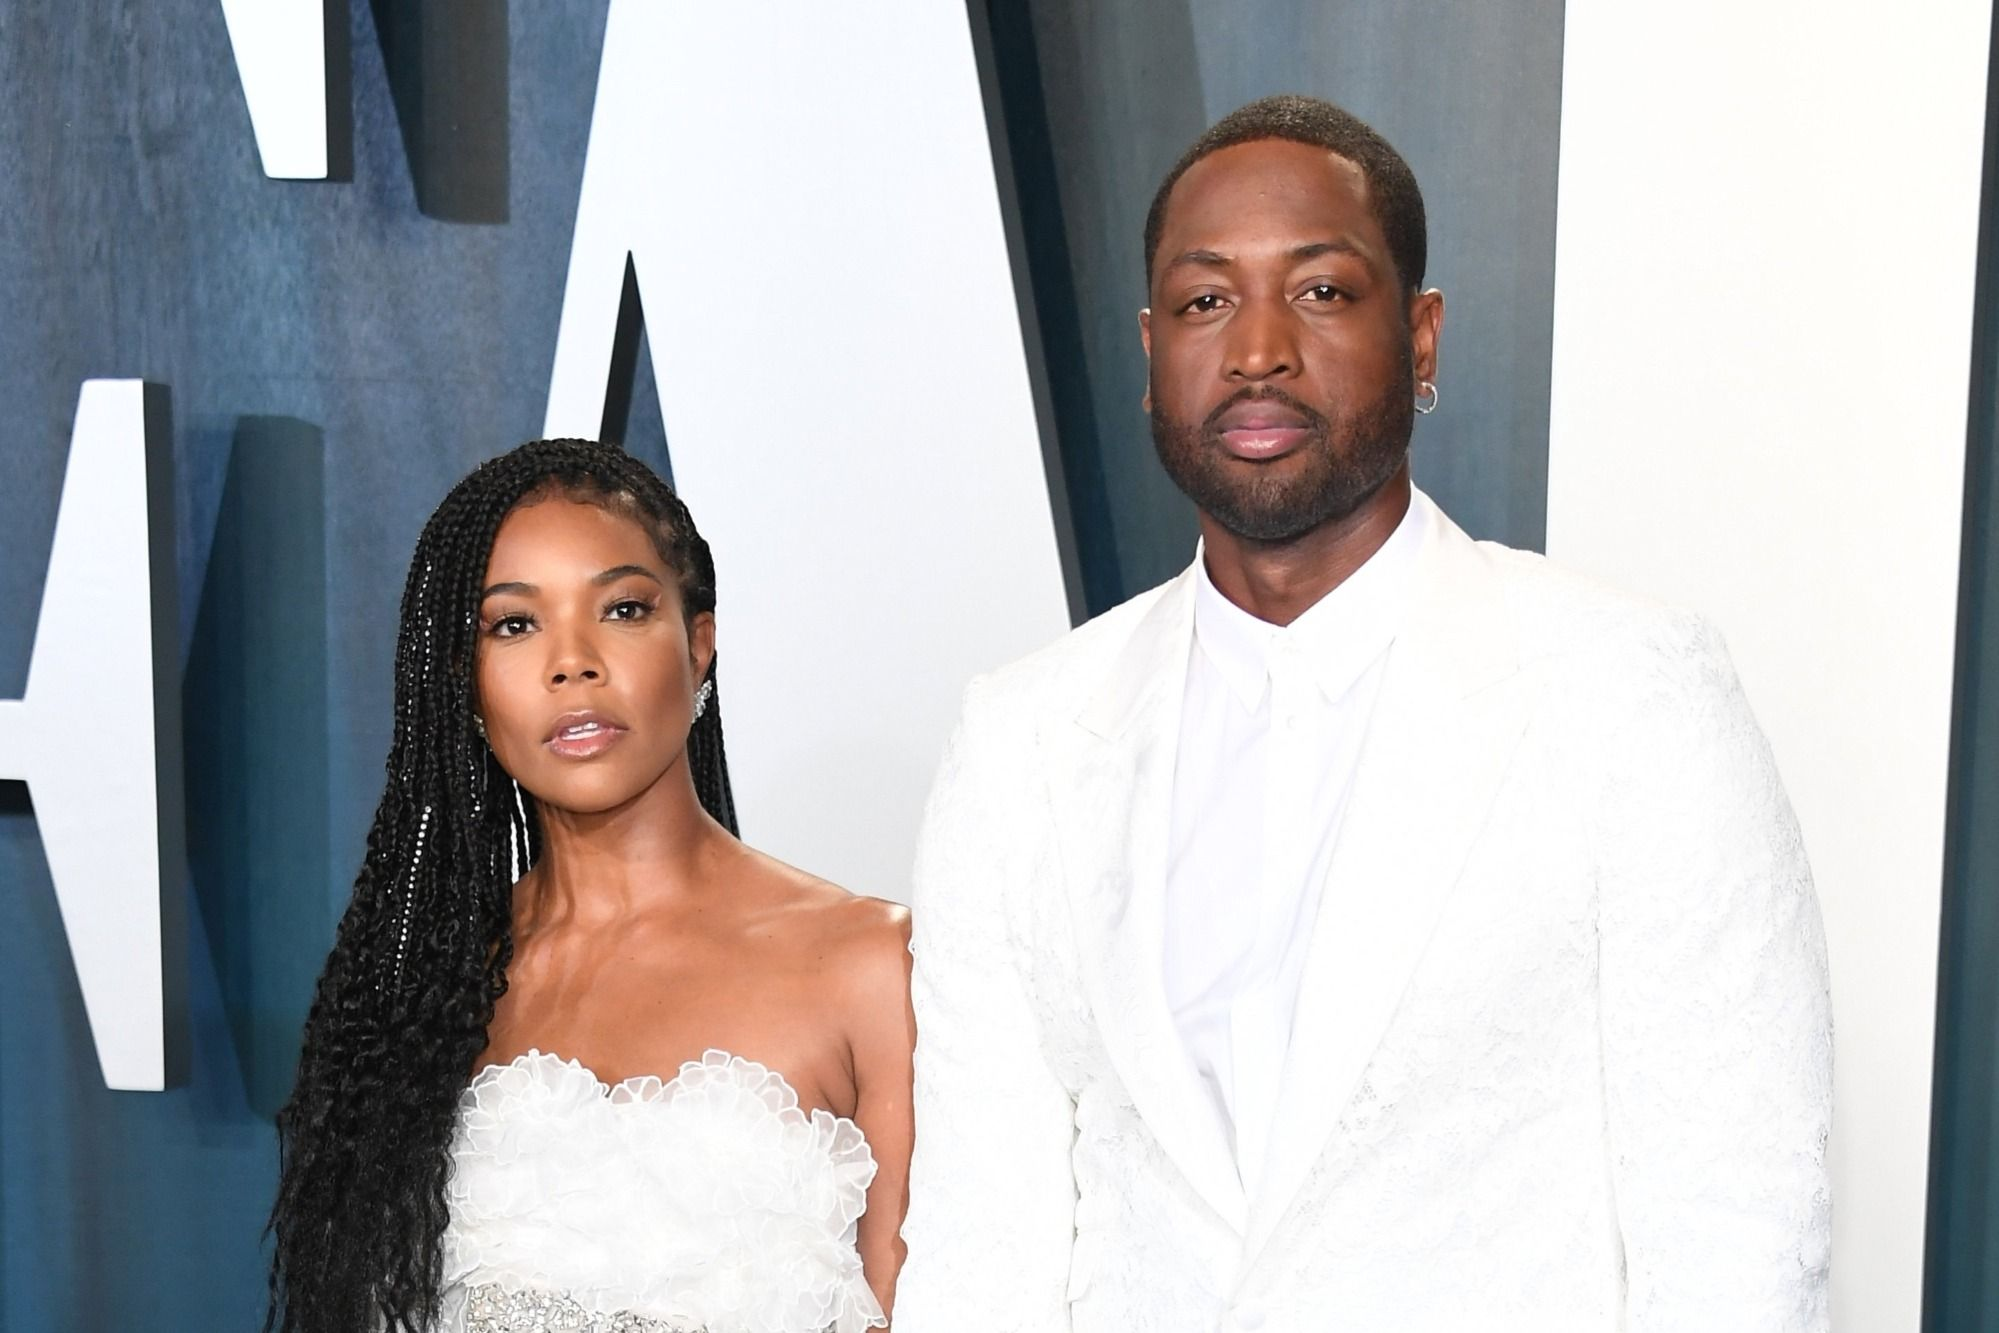 Dwyane Wade and Gabrielle Union Launch Diverse Baby Skin Care Brand 'Proudly'